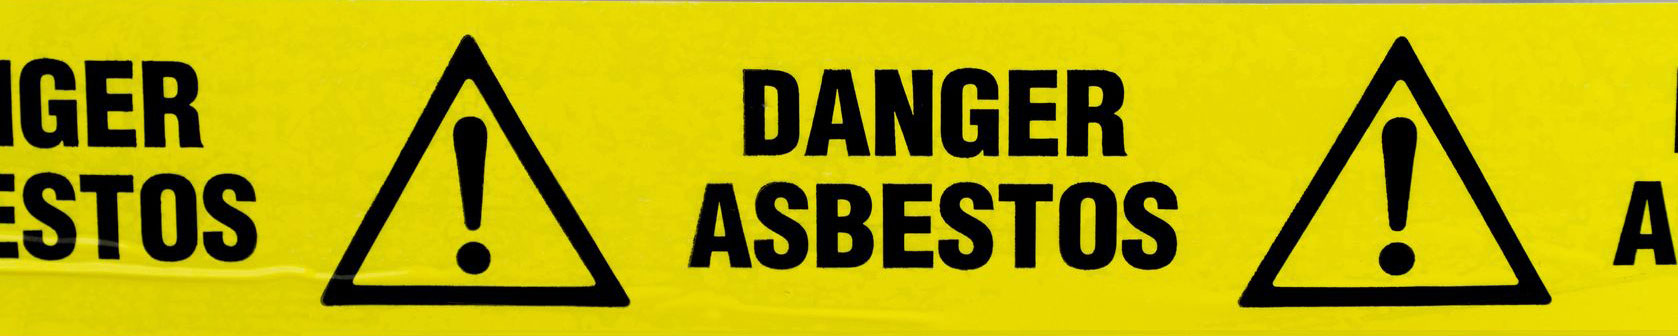 asbestos removal service - bathroom, garage, shed sydney